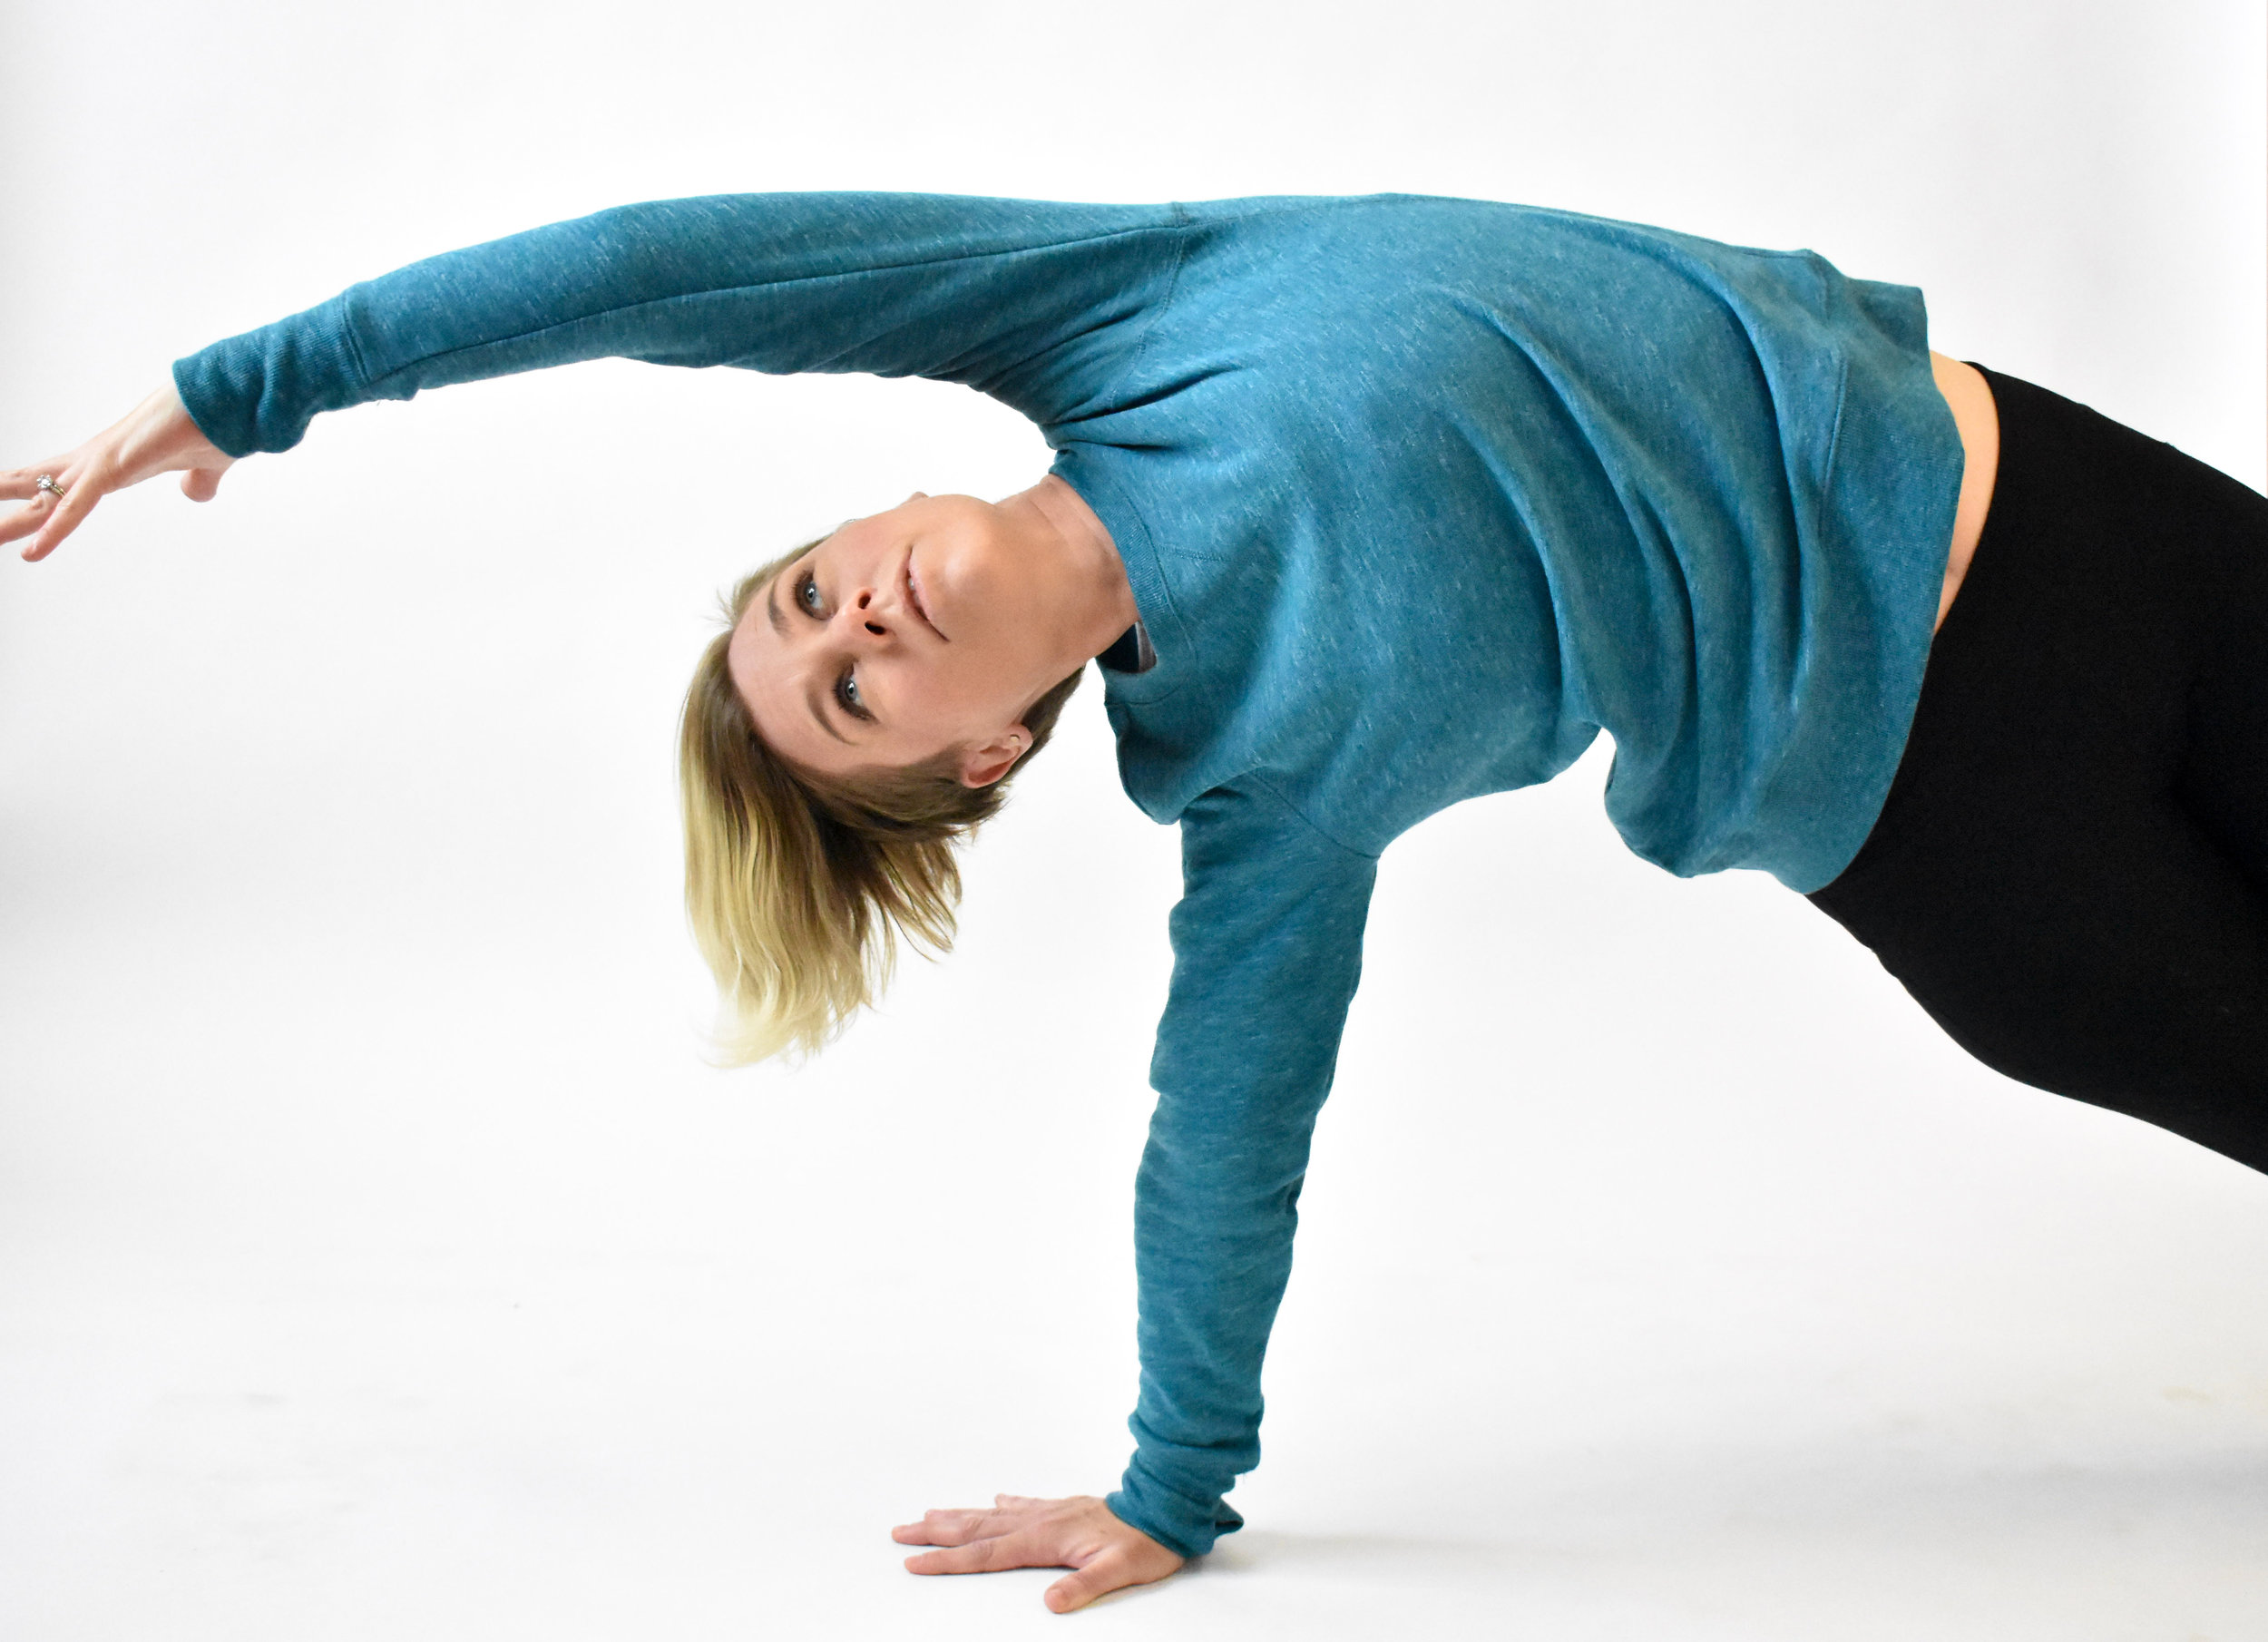 Amrita Barre - Tone your body and mind through the combination of Pilates, yoga, and fundamental training.